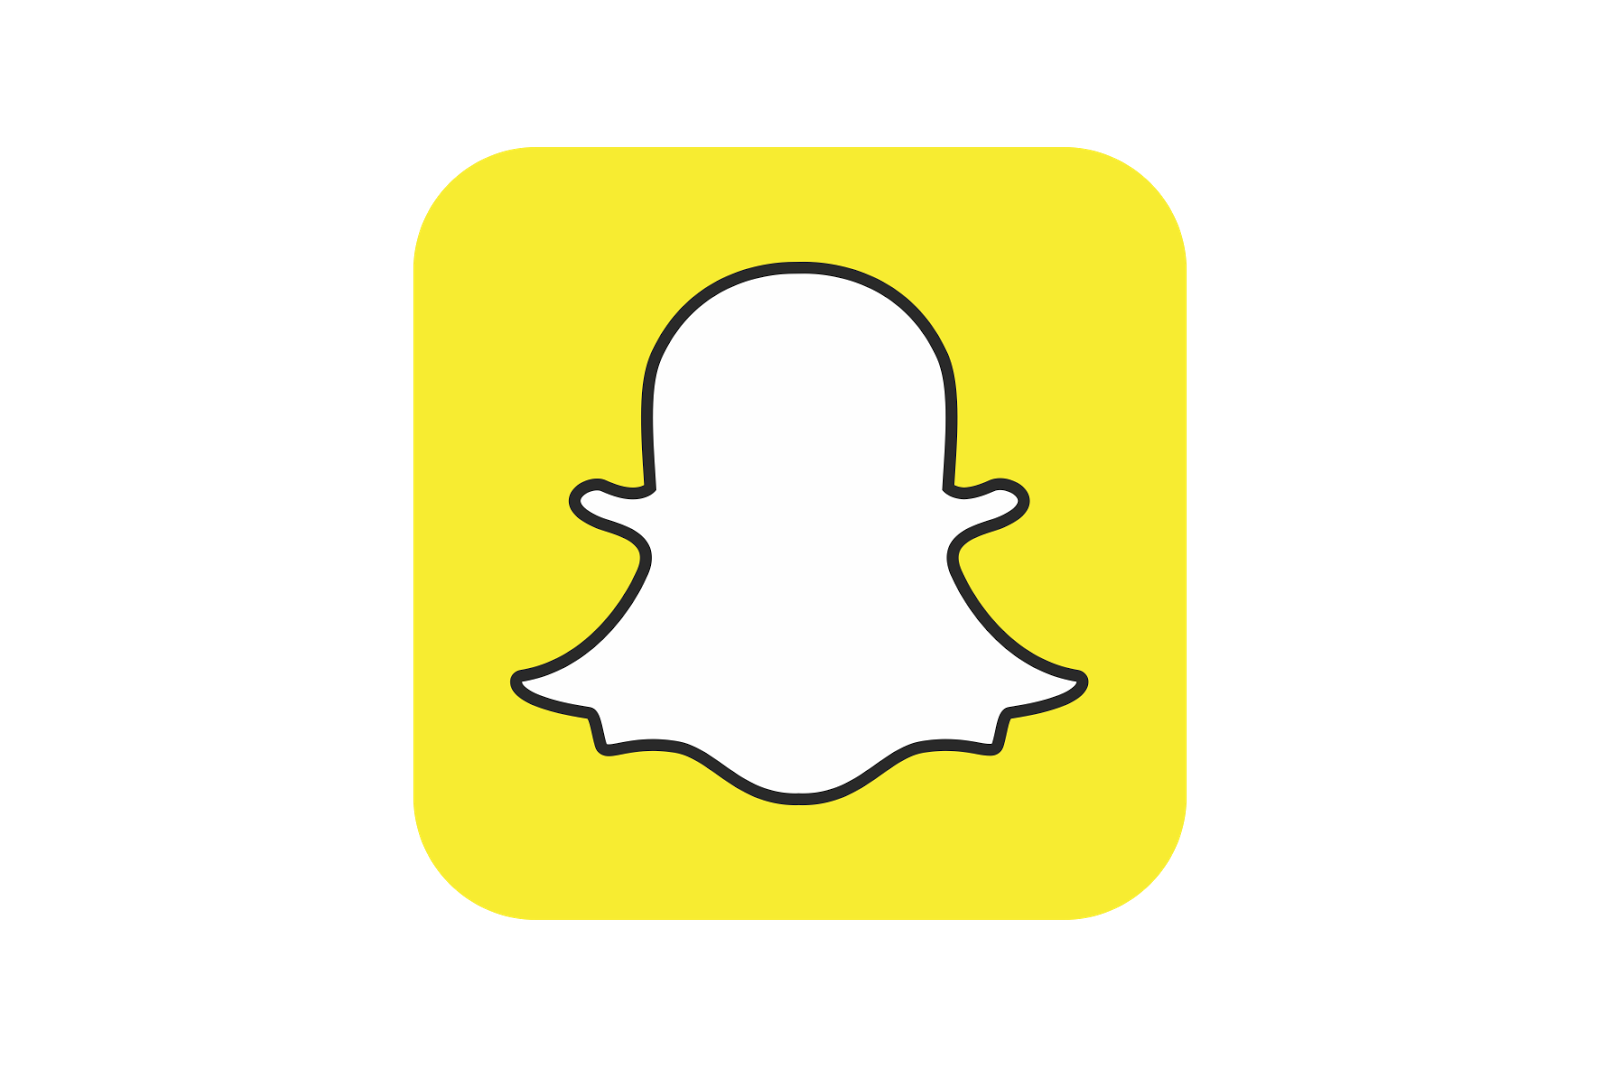 Download Snapchat Logo High Resolution image #46436